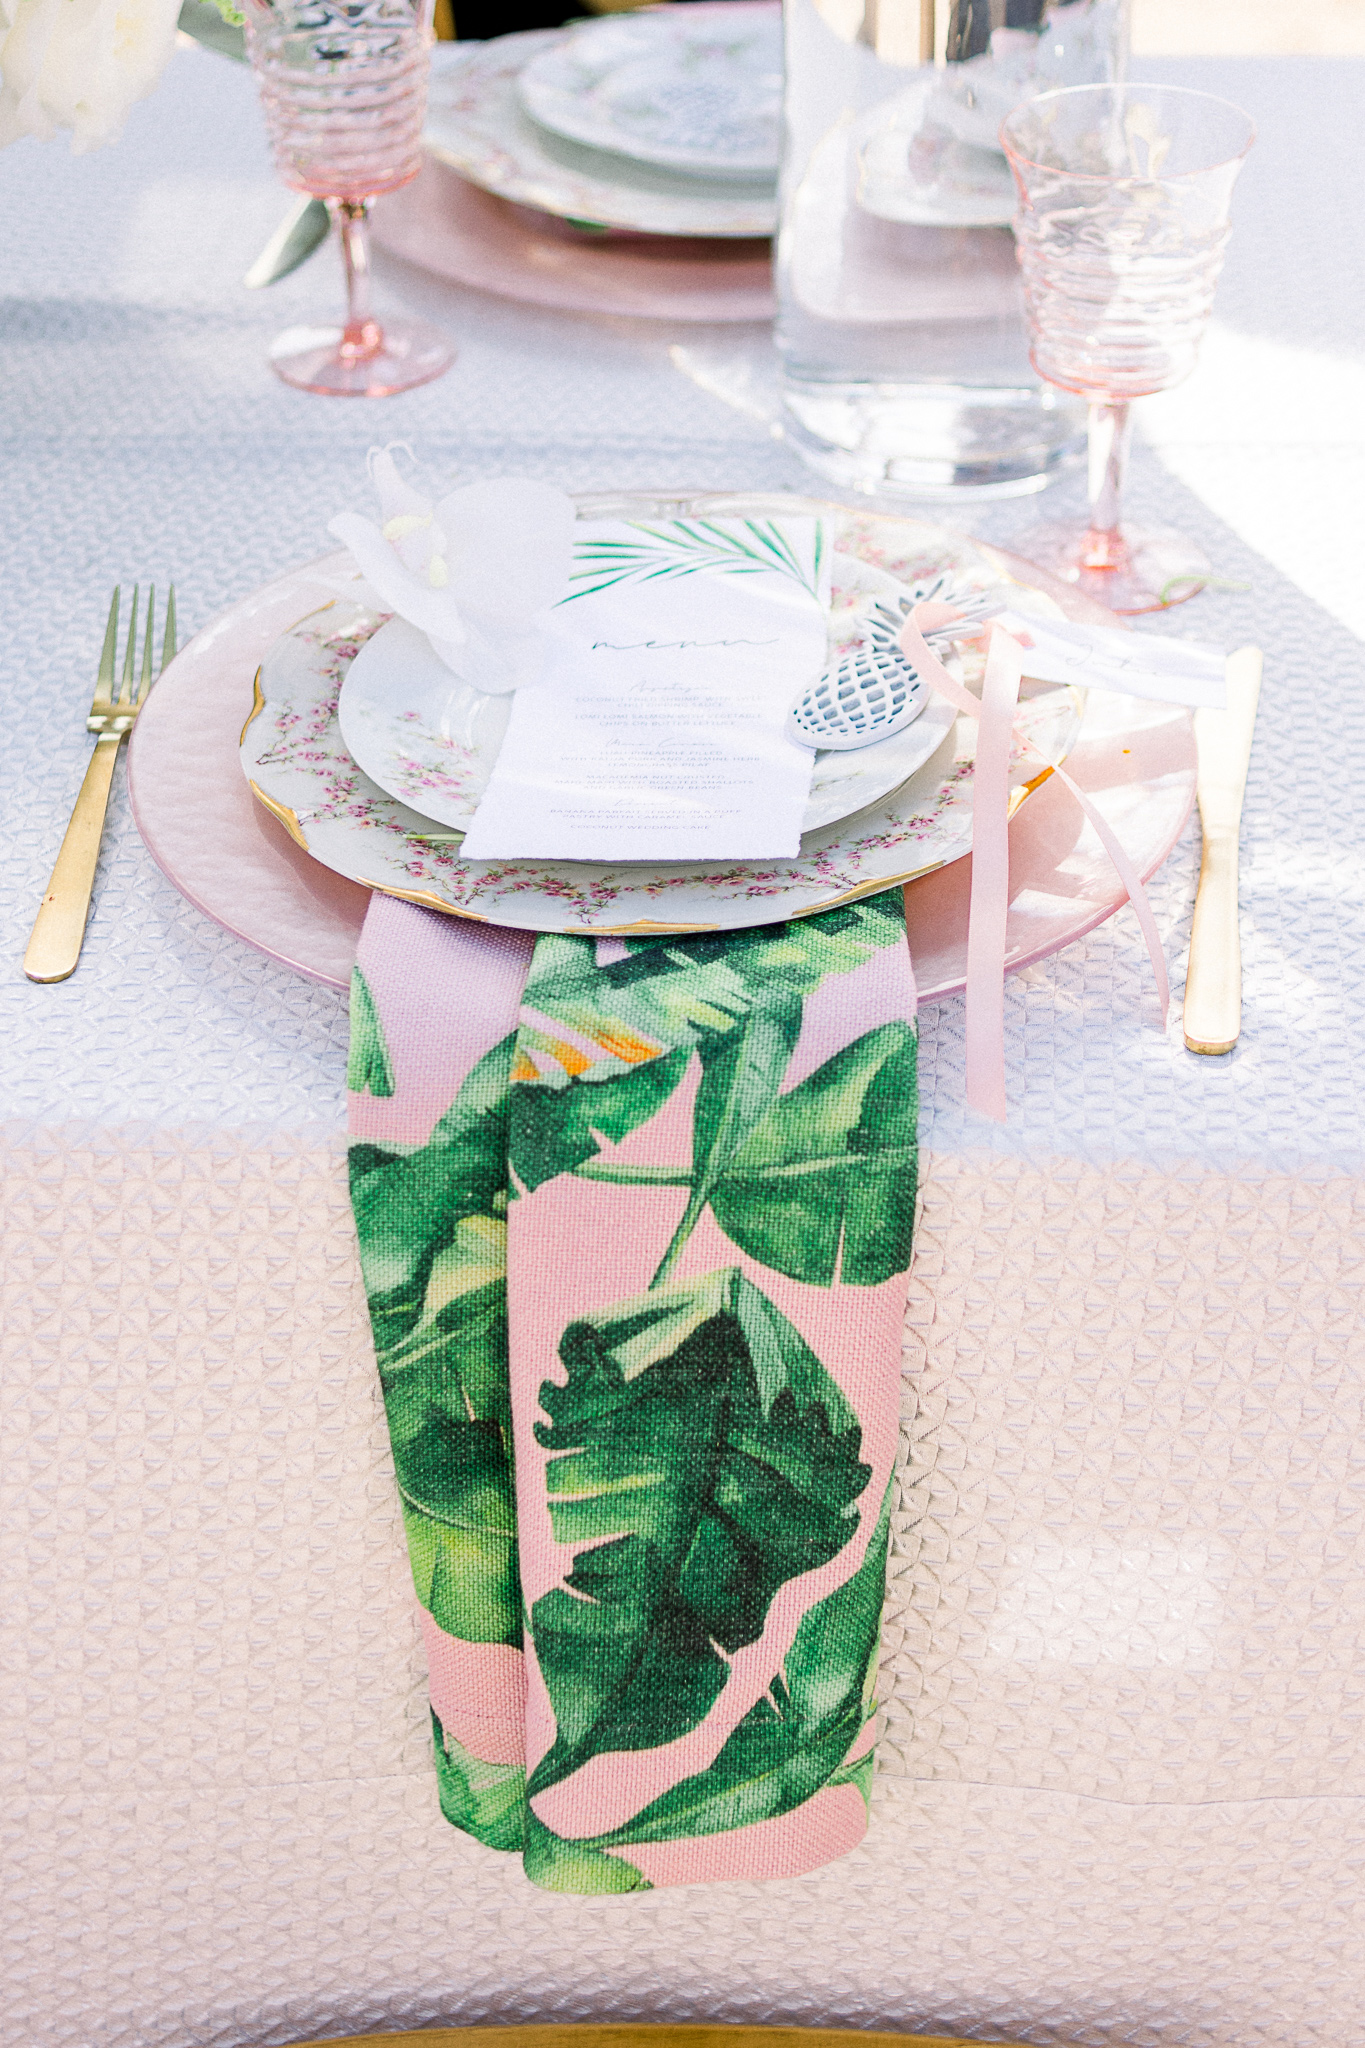 emerald-peak-temecula-wedding-table-décor-with-pink-linens-tropical-leaf-napkins-and-gold-flatware